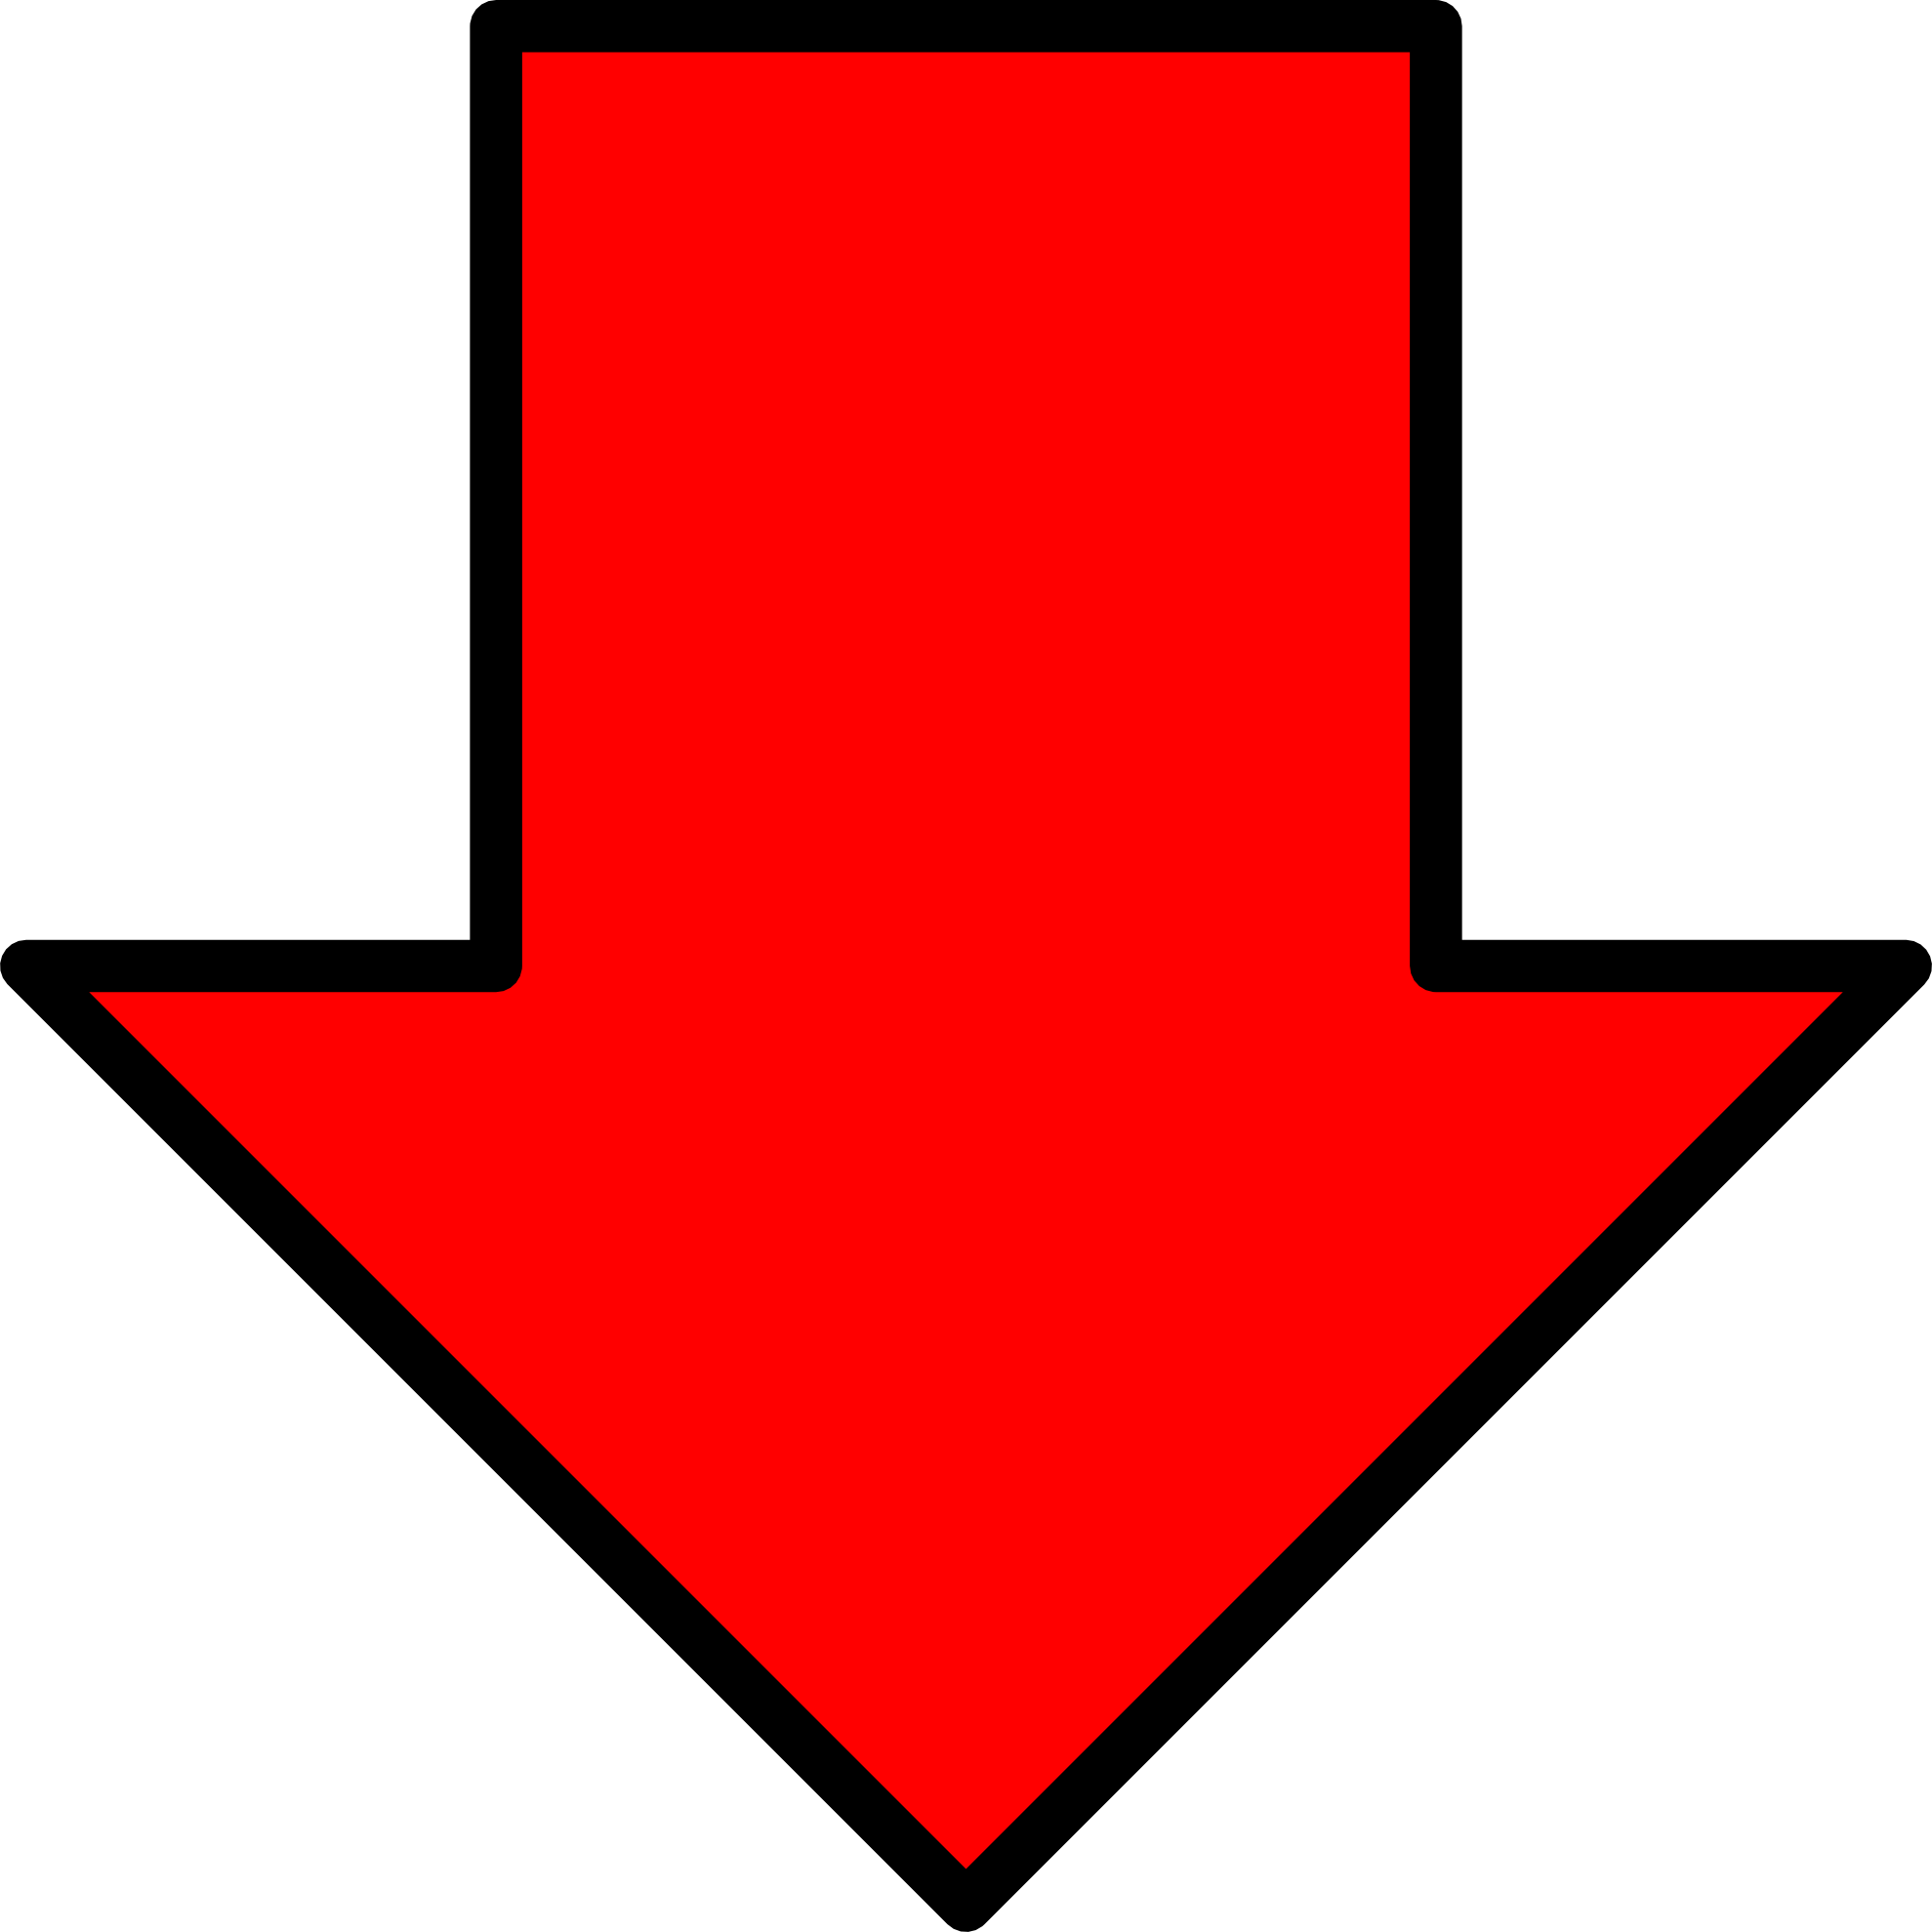 Red Vertical Arrow Png - Free Icons and PNG Backgrounds